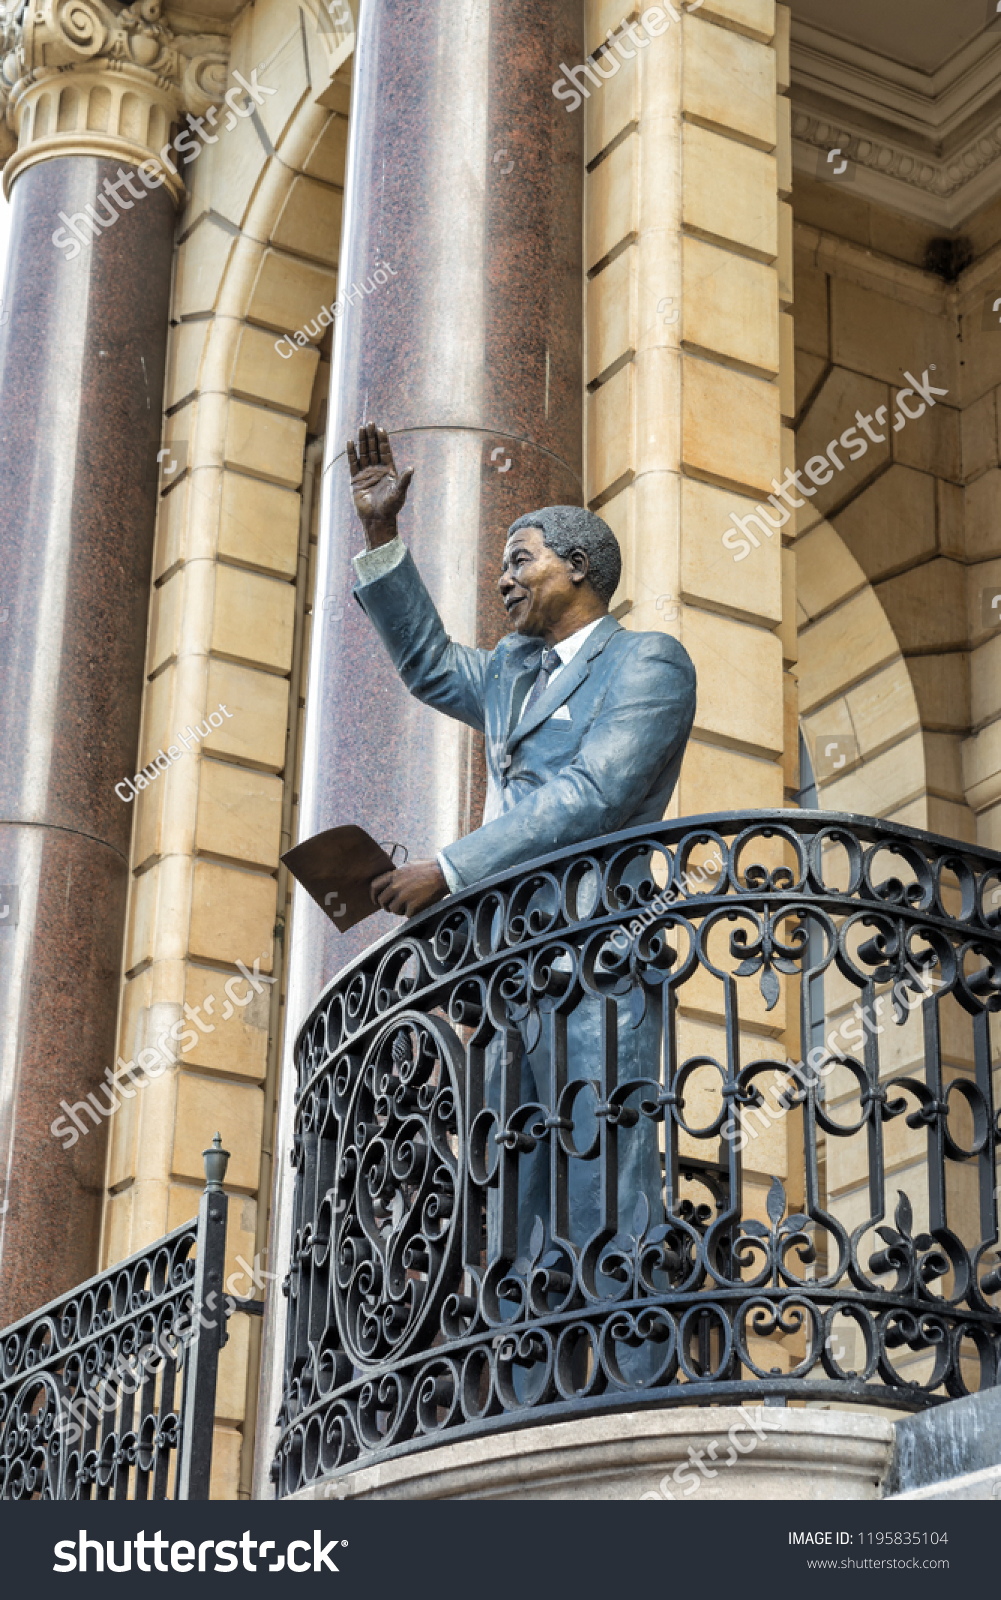 CAPE TOWN, SOUTH AFRICA - SEPTEMBER 14, 2018: A Statue of Nelson Mandela waving is placed on the balcony of Cape Town City Hall overlooking the Grand Parade public square was unveiled on July 24,2018.